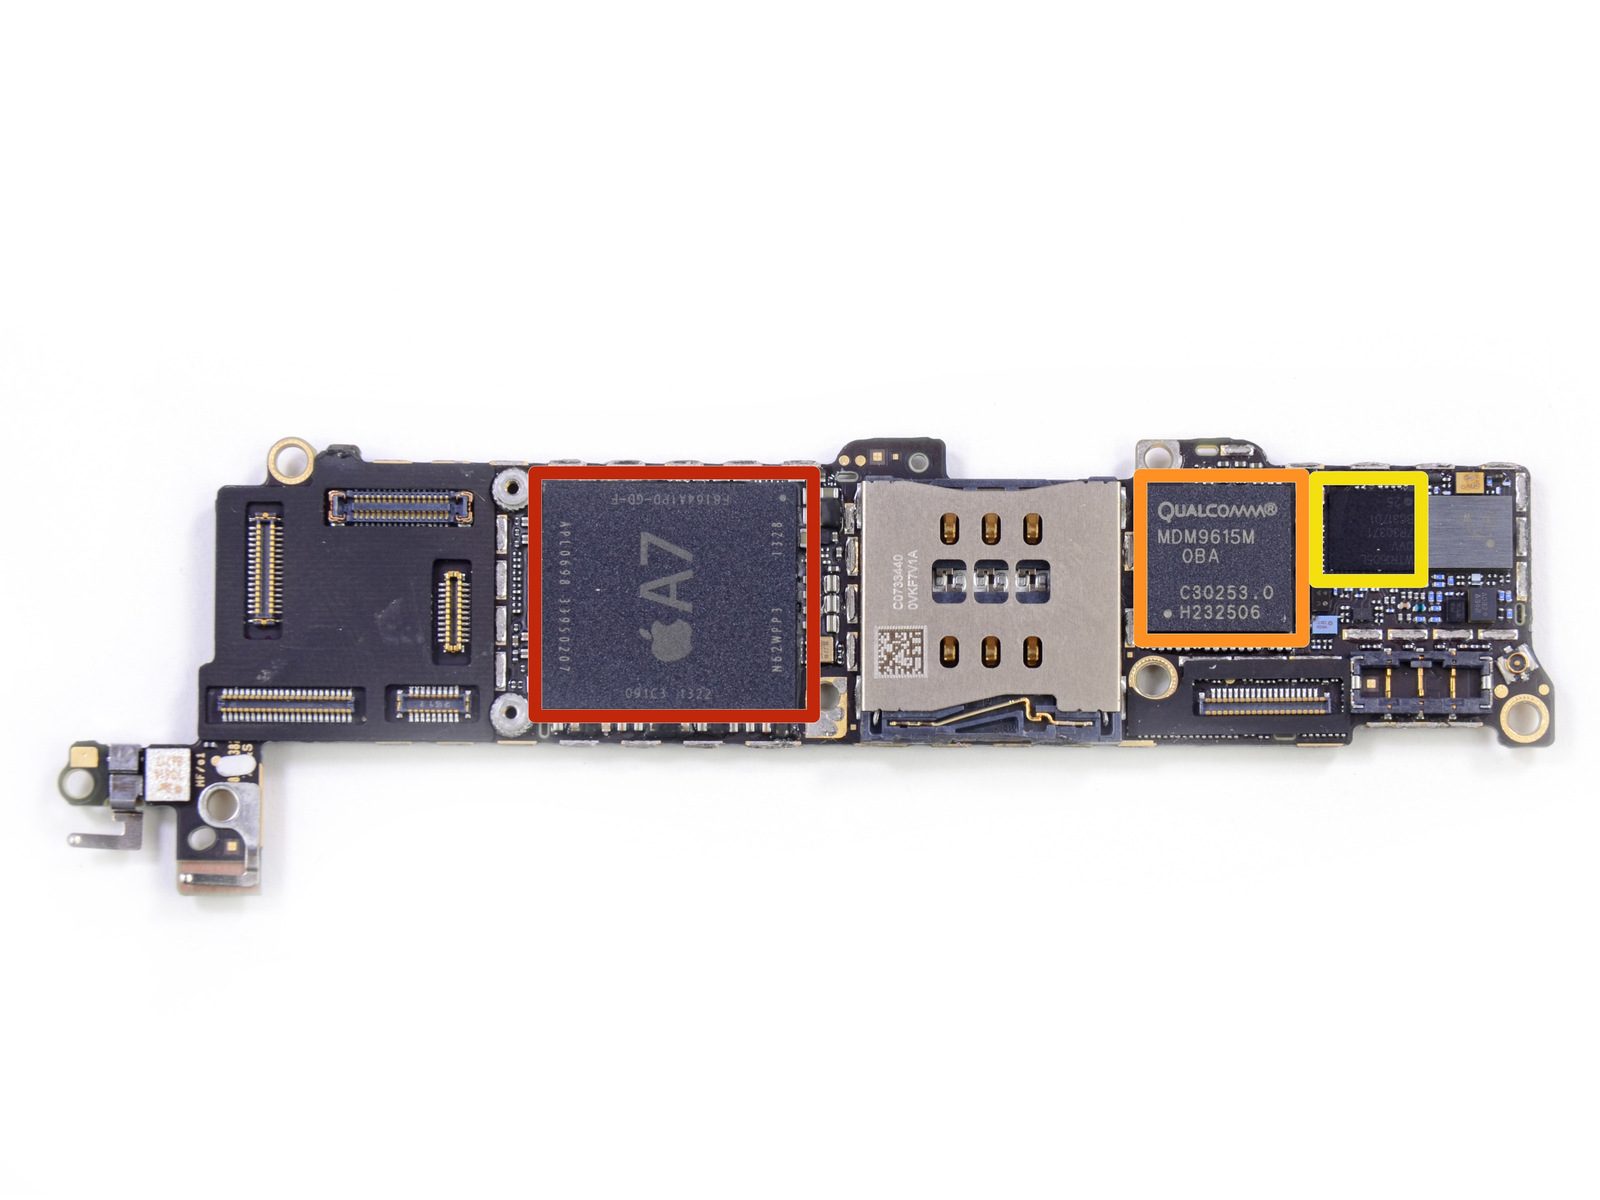 Apple A7 APL0698 SoC (in red), Qualcomm MDM9615M LTE Modem (orange), and  Qualcomm WTR1605L LTE/HSPA+/CDMA2K/TDSCDMA/EDGE/GPS transceiver (yellow).